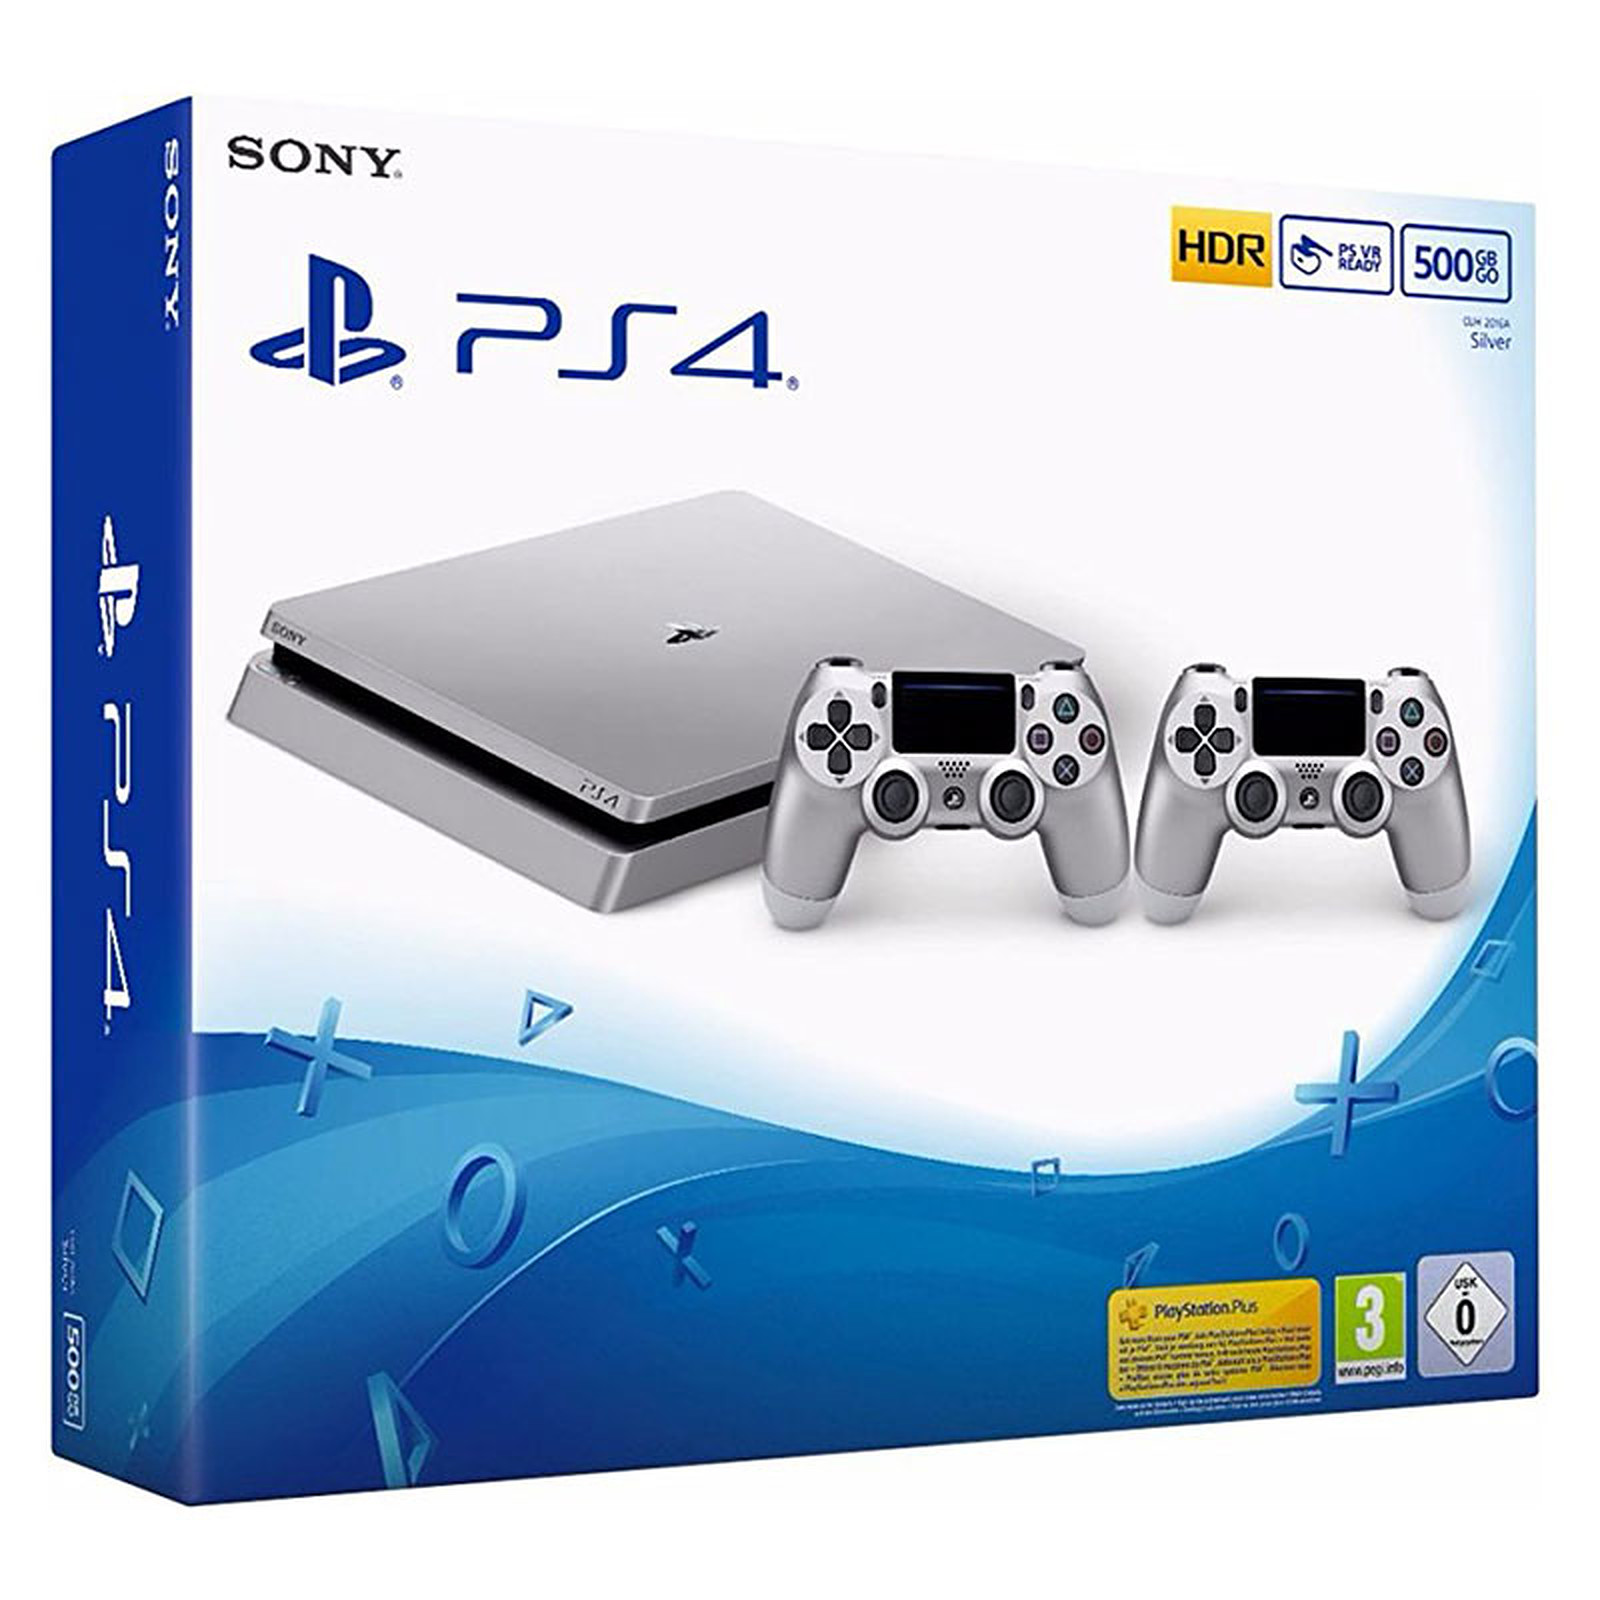 Sony PlayStation 4 Slim Argent (500 Go) + 2 DualShock